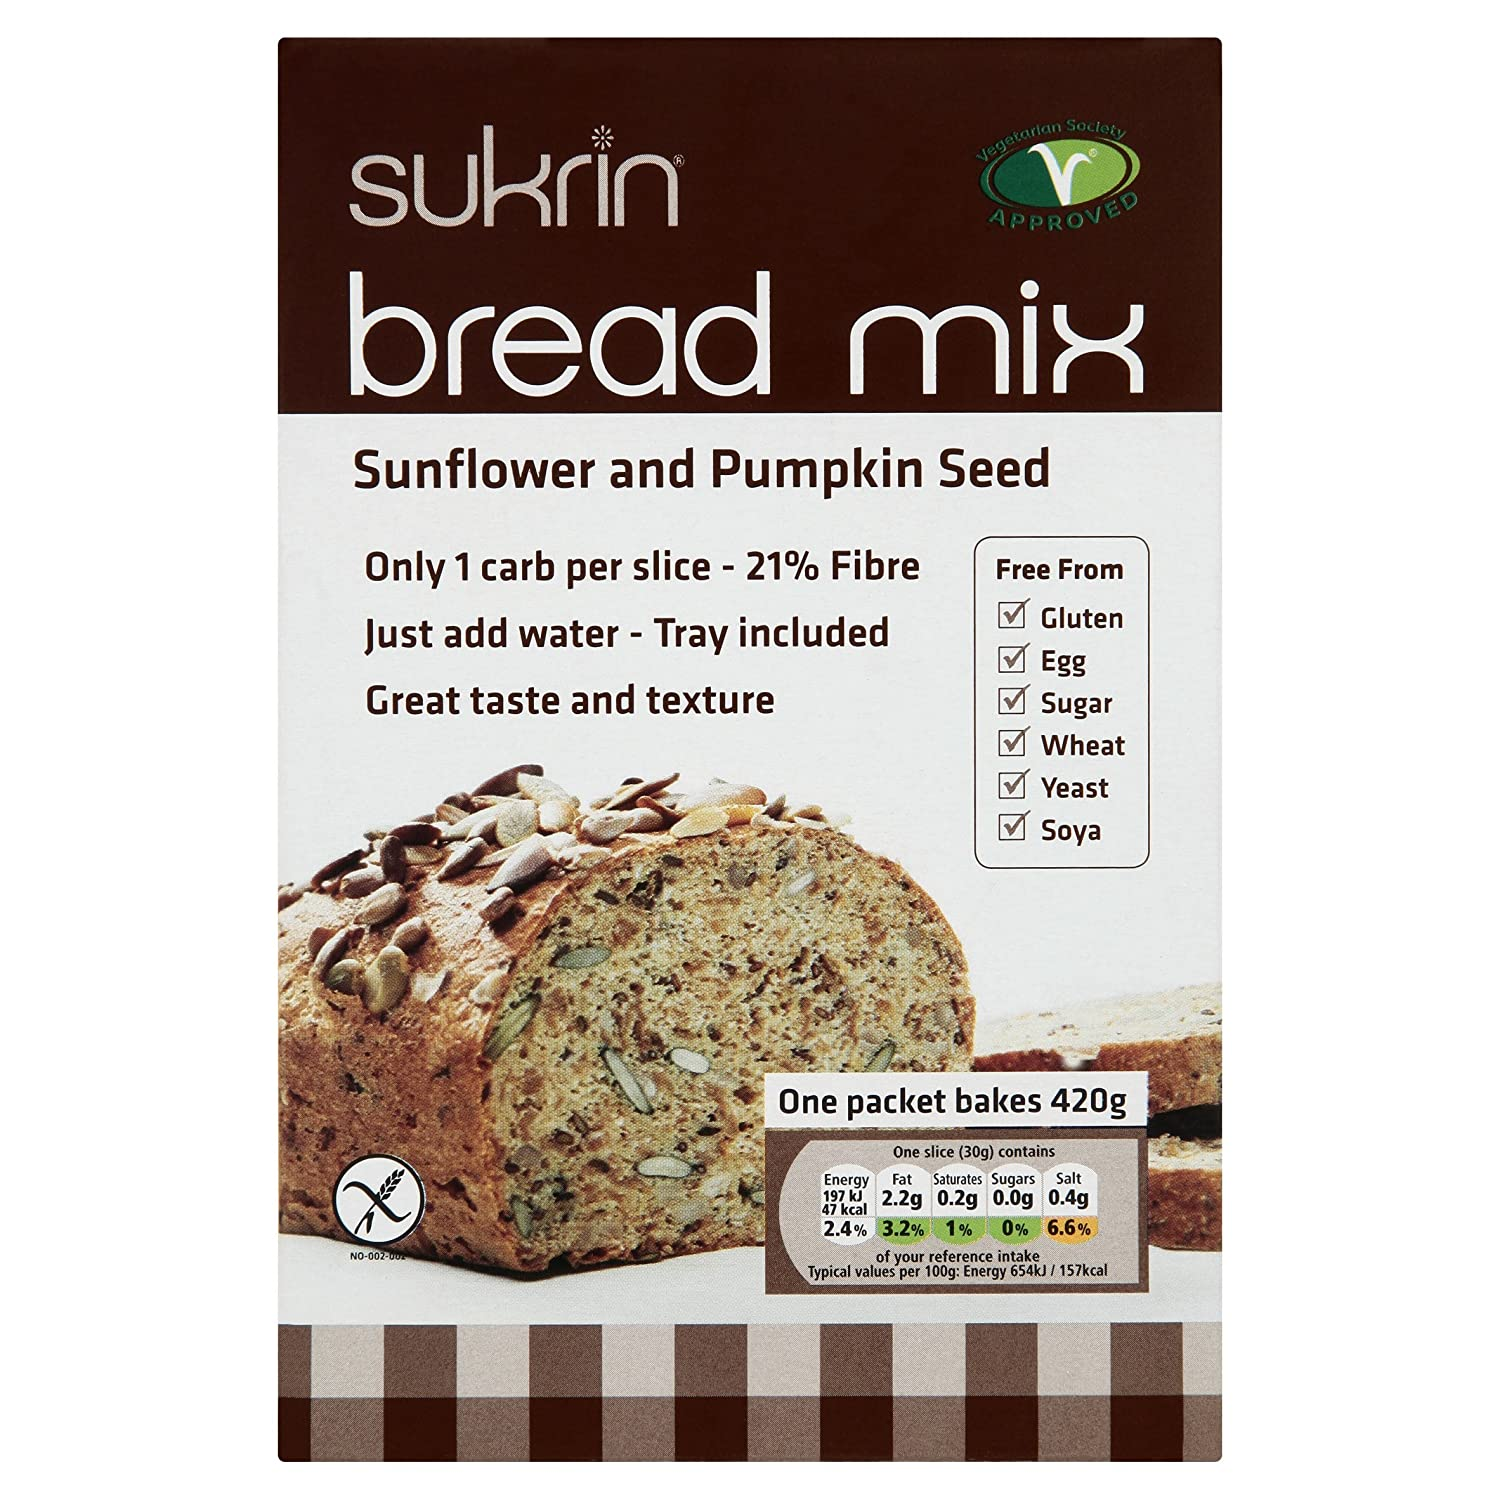 Sukrin Sunflower and Pumpkin Seed Low Carb Free-From Bread Mix. Low Fat, Low Calorie, Egg, Yeast, Soya, Sugar, Wheat and Gluten Free, Great Taste!